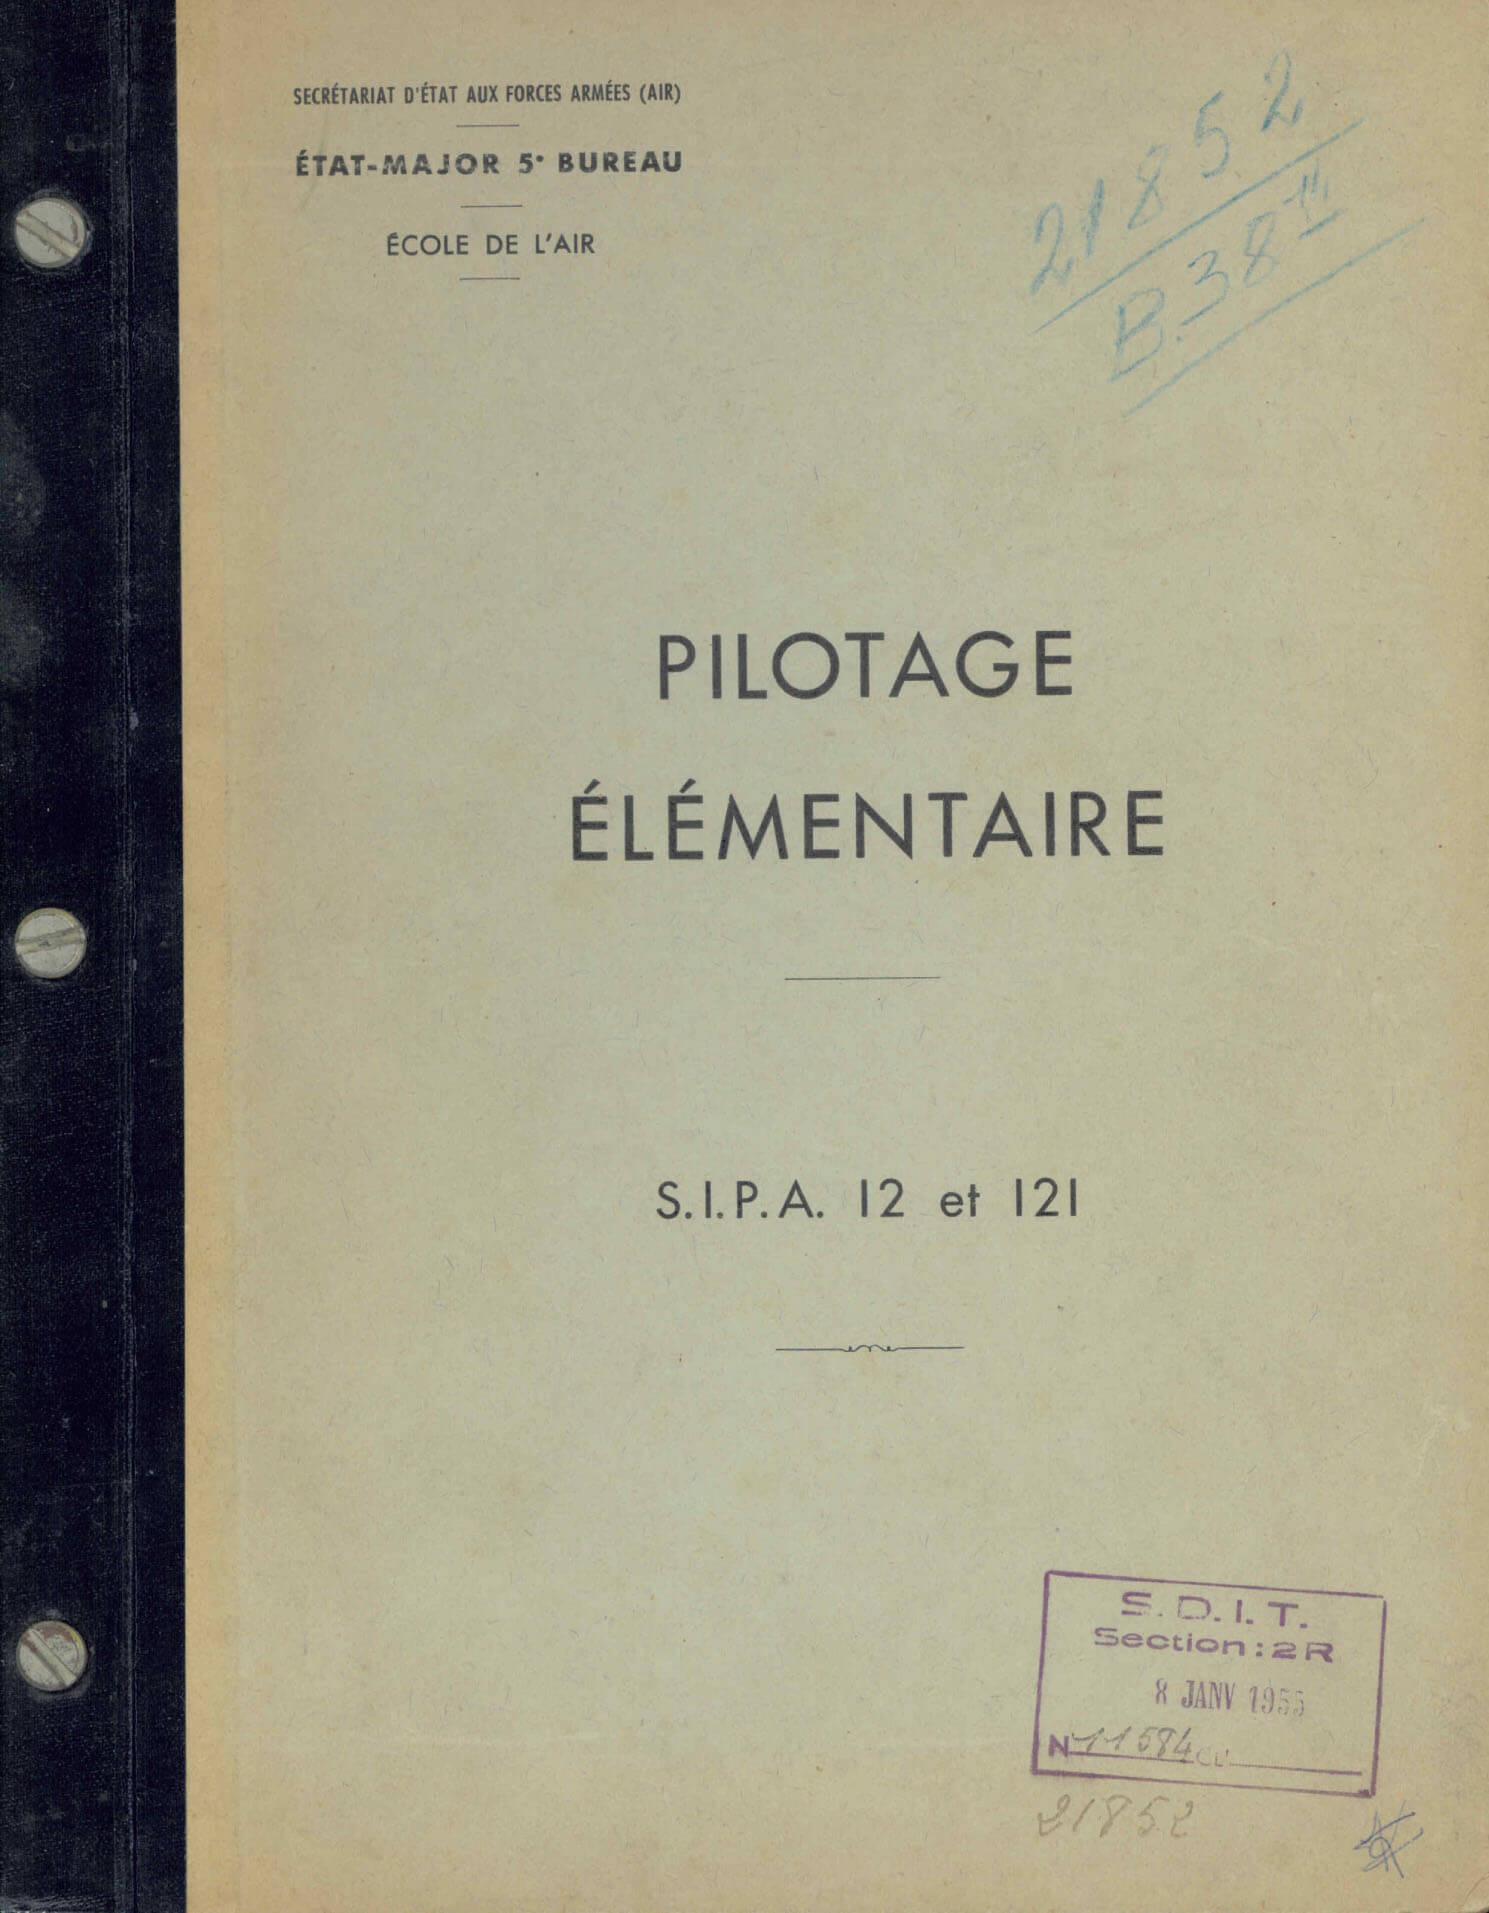 Flight Manual for the SIPA S.12 and S.121